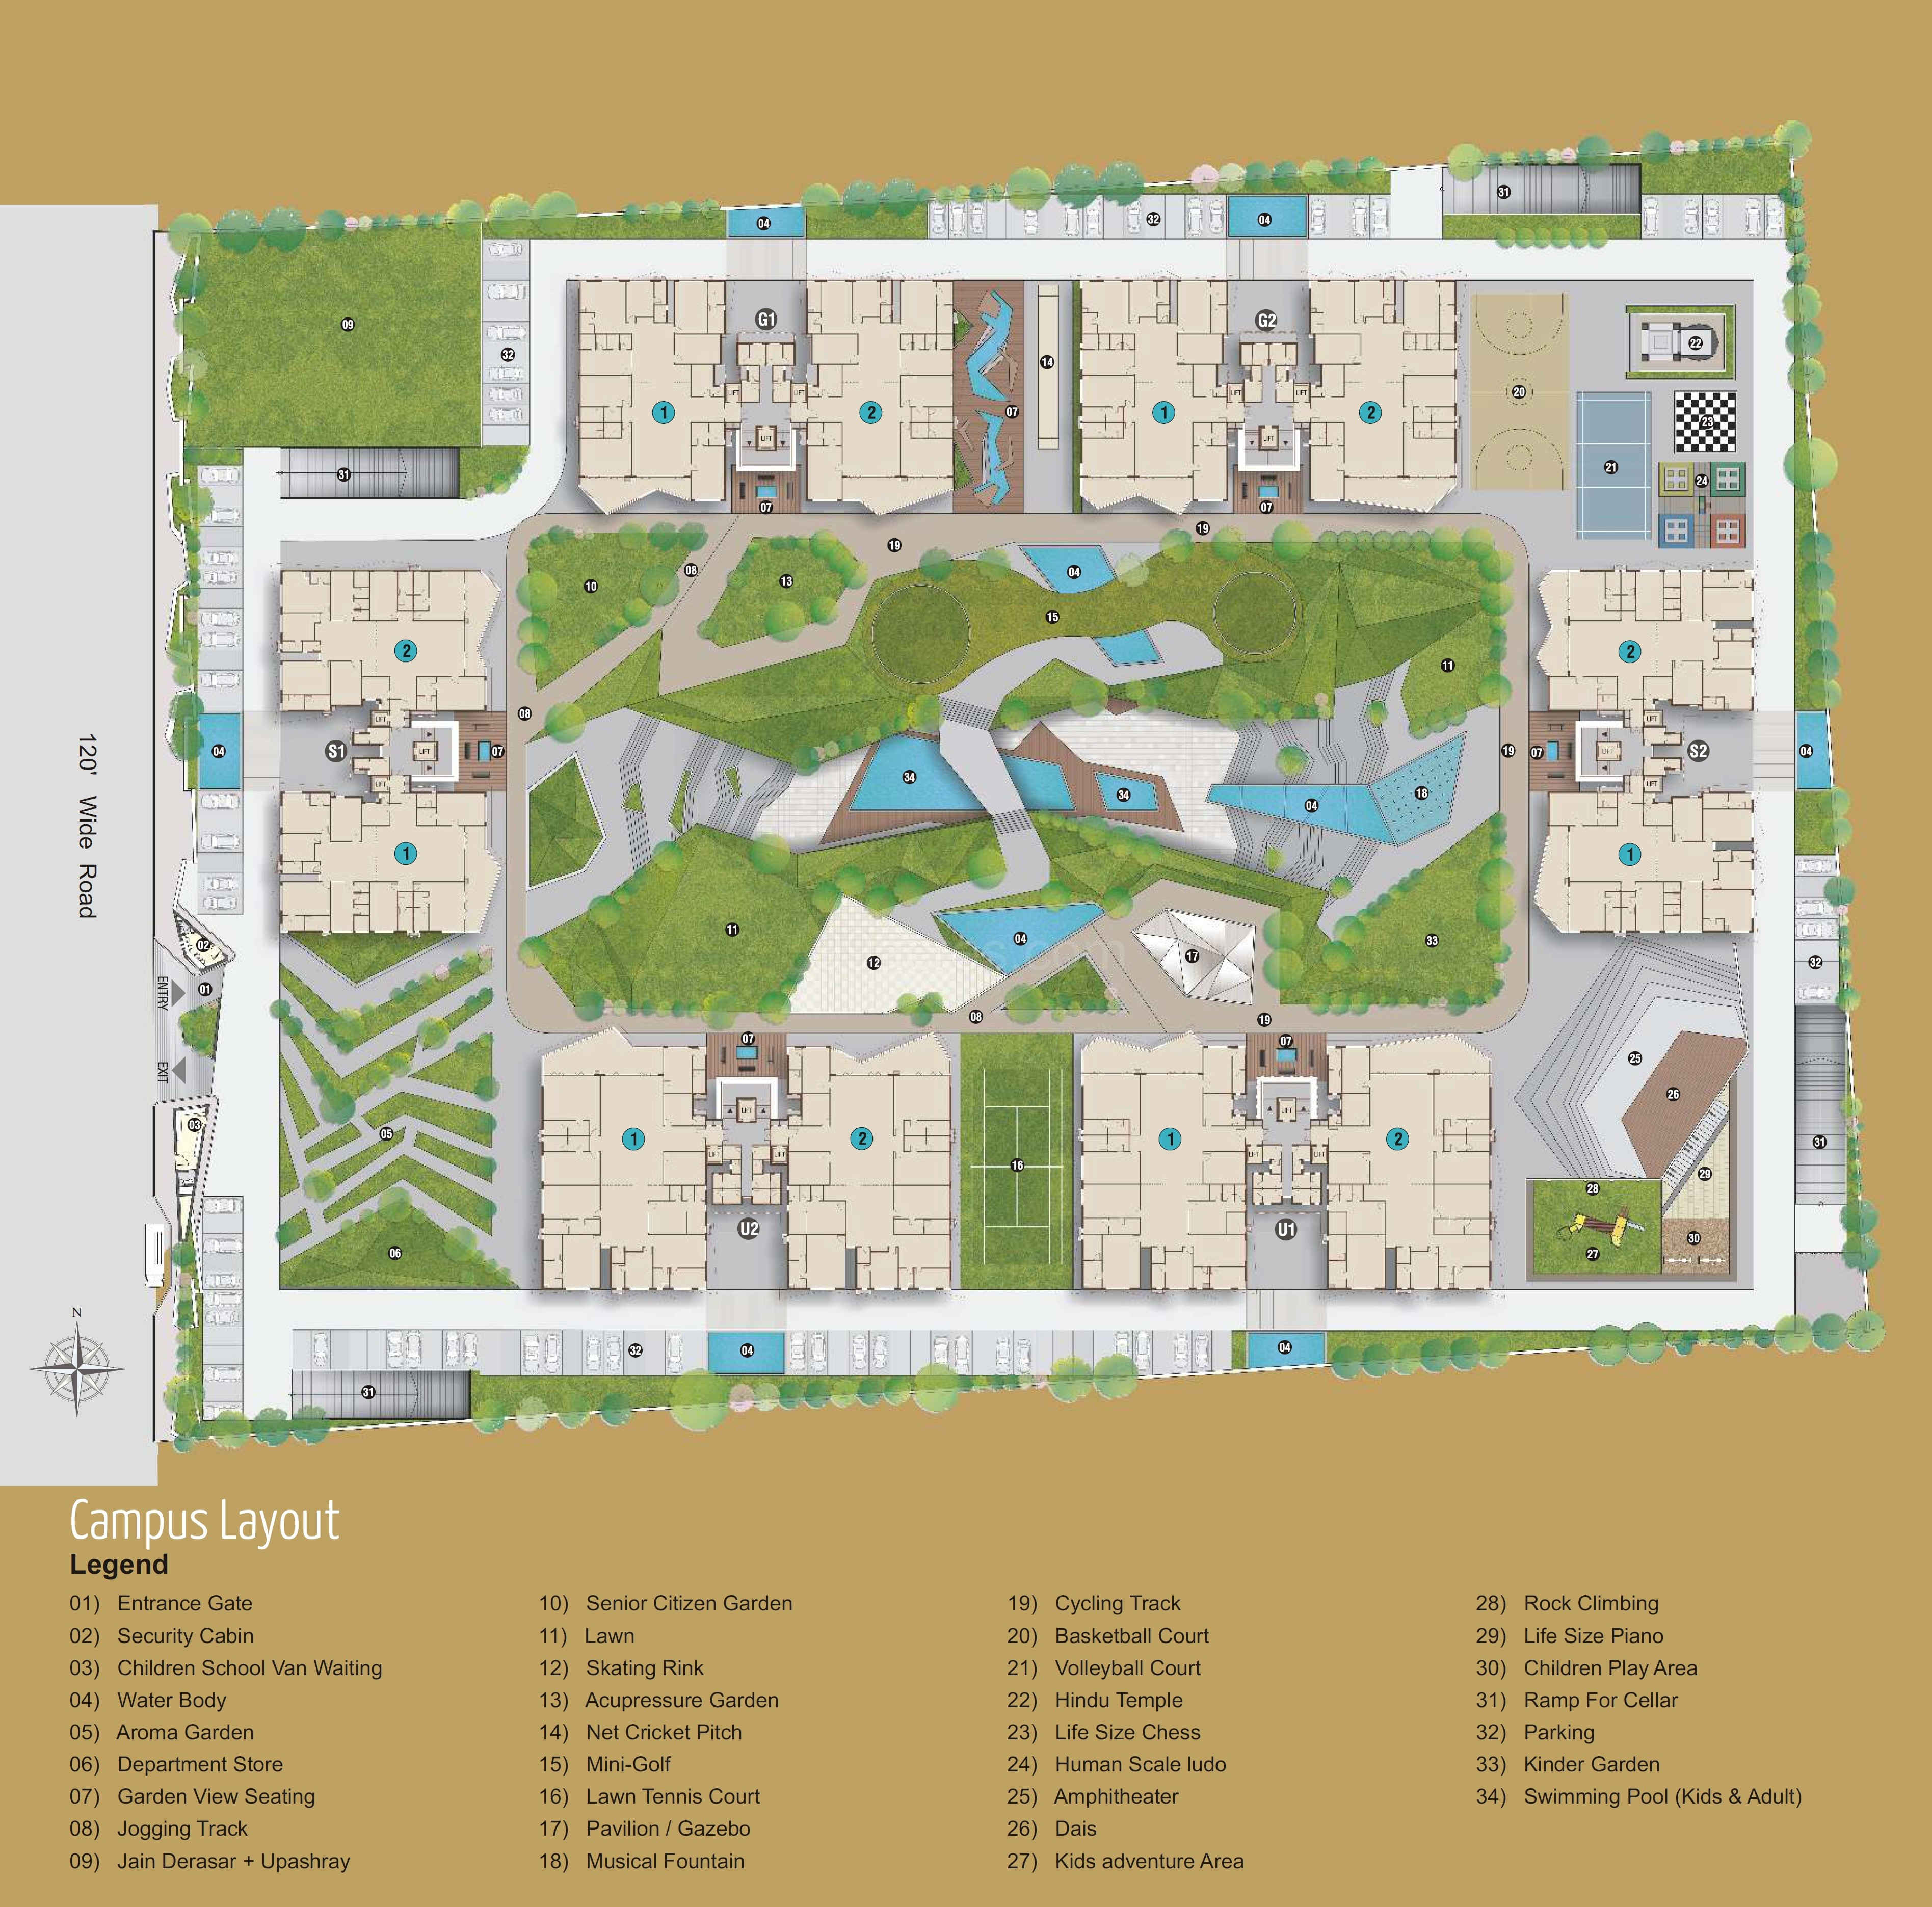 Happy Home Group Happy Home Excelencia Floor Plan - Happy Home ... on thomas home plans, artist home plans, mud home plans, real estate plans, mitchell home plans, white home plans, master home plans, non-traditional home plans, ohio home plans, shop home plans, veterans home plans, senior community, group home plans, first home plans, funeral home plans, affordable home plans, handicap home plans, retirement home plans, church home plans,